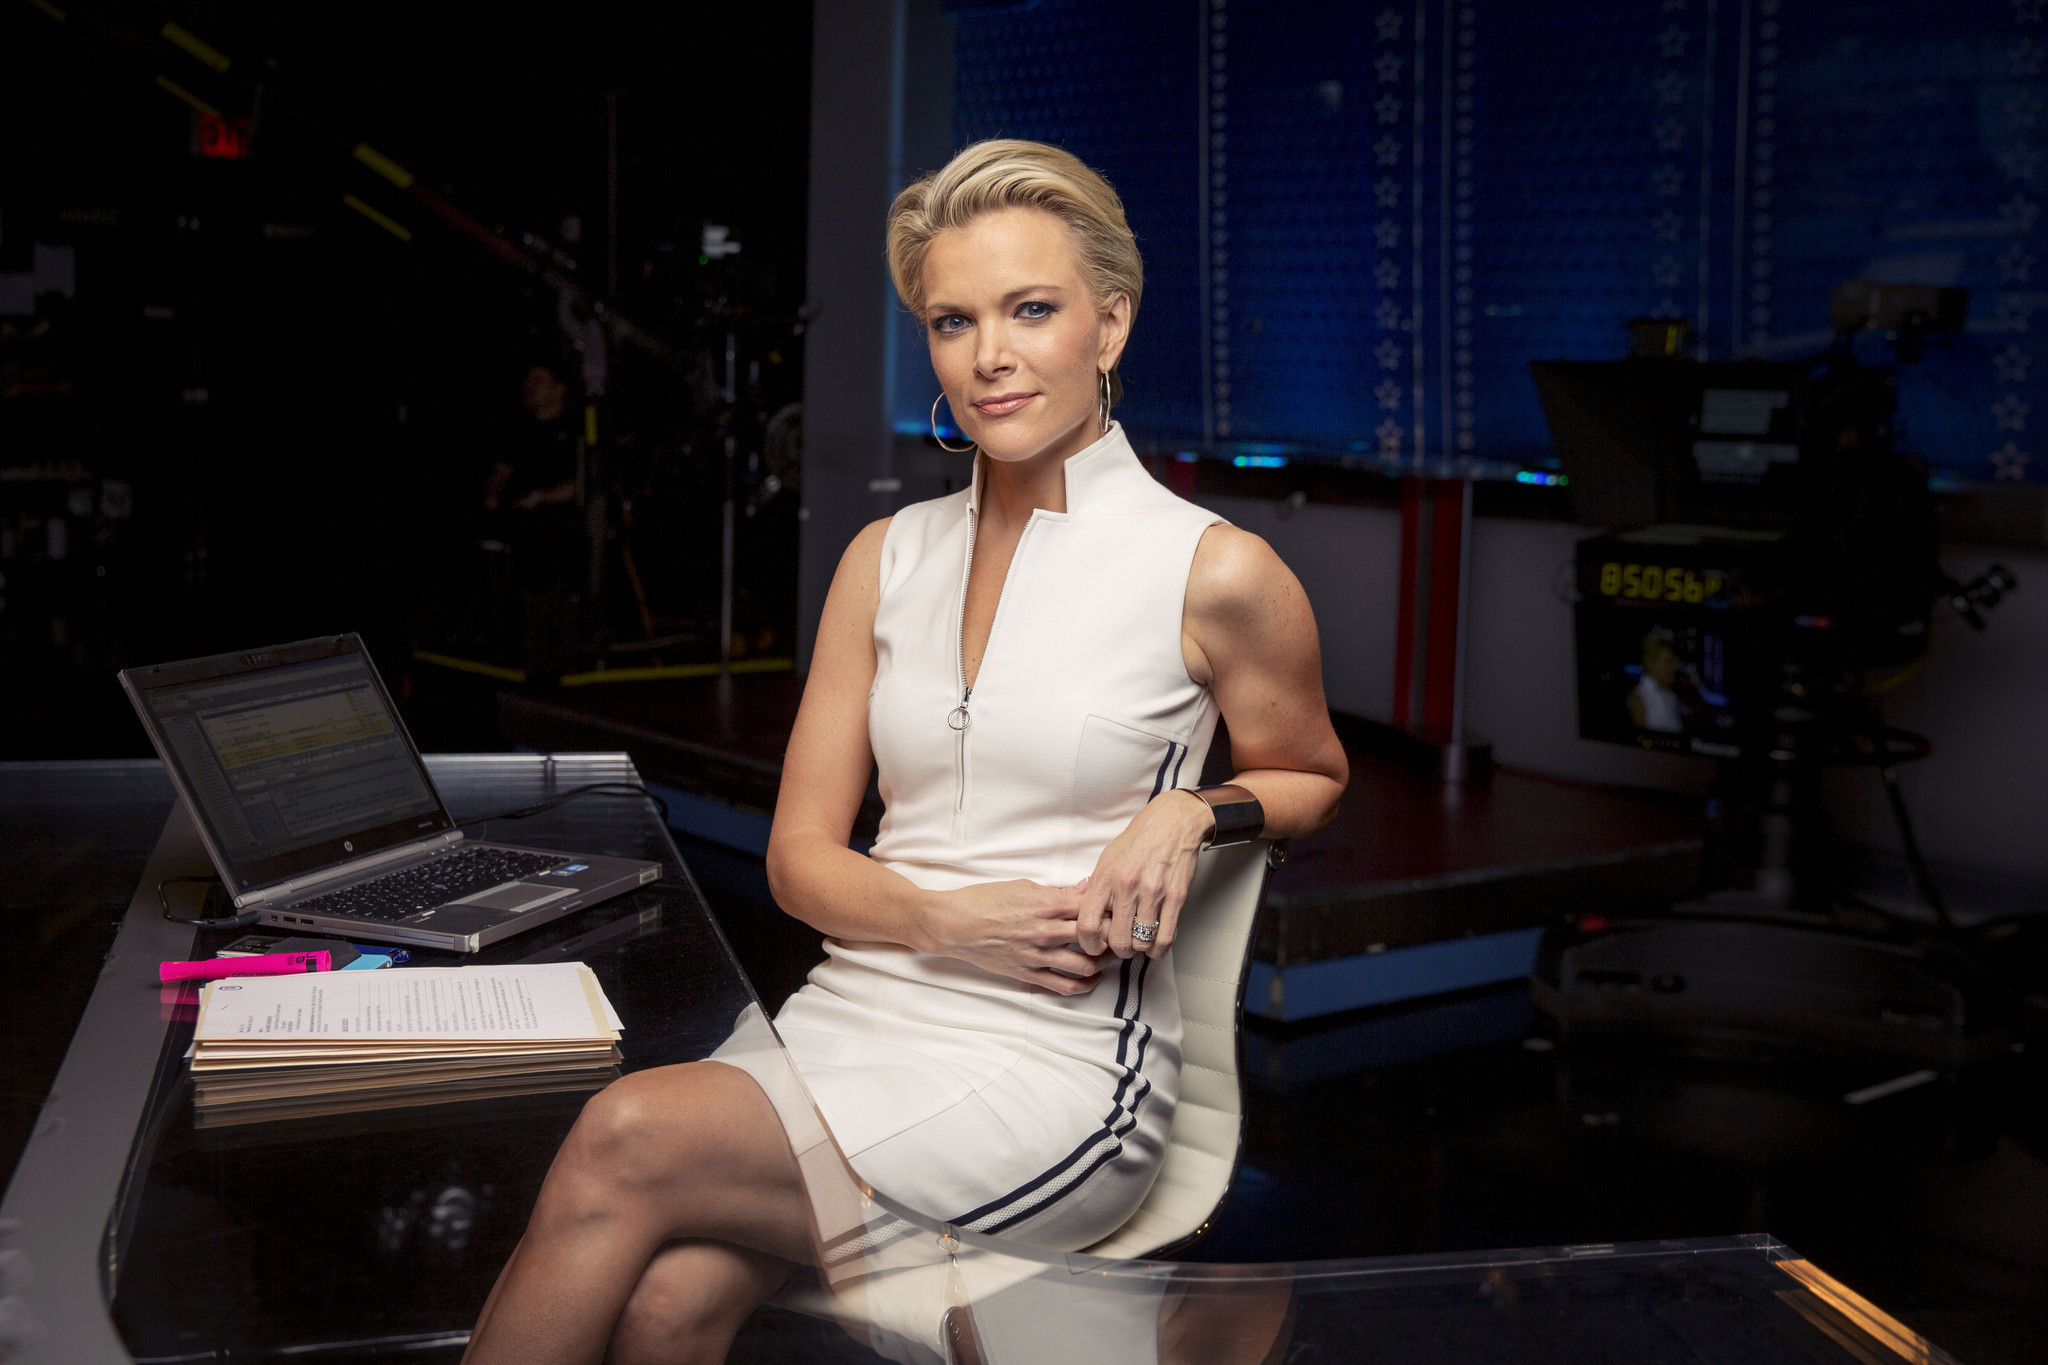 Trump talks to Megyn Kelly about bullying - Chicago Tribune